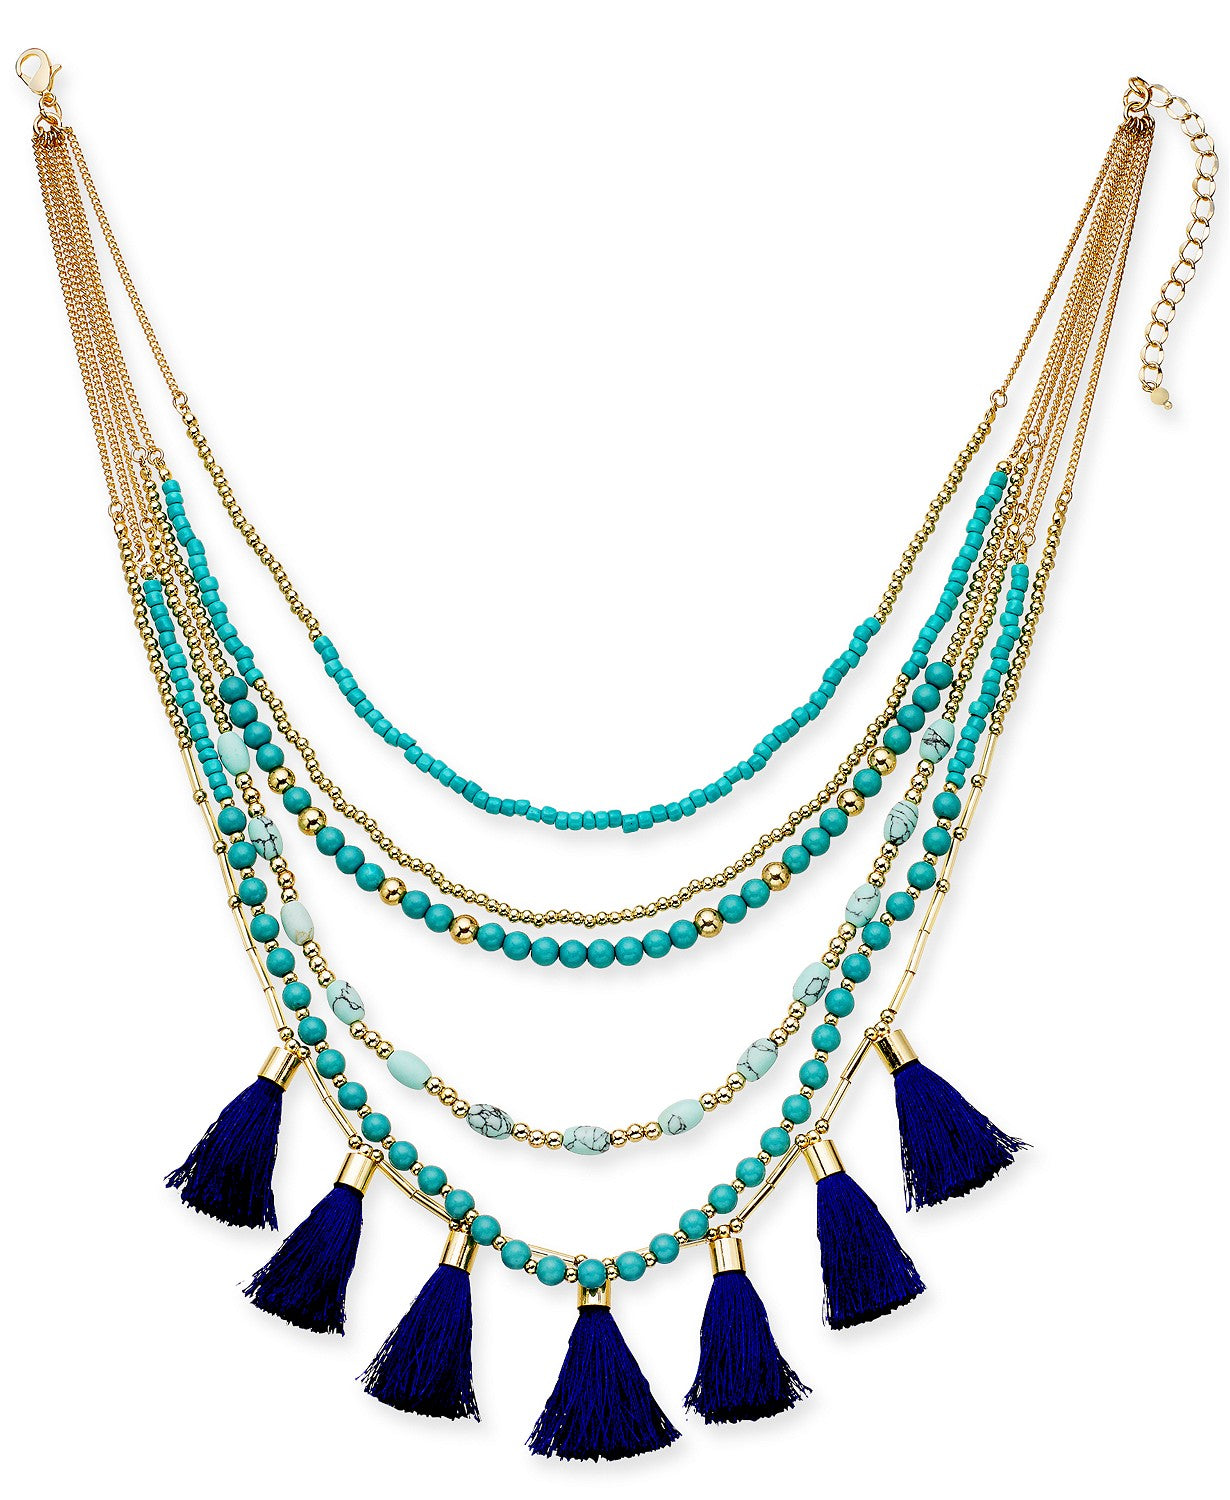 "I.N.C. Gold-Tone Bead & Tassel Multi-Layer Necklace, 16"" + 3"" extender"